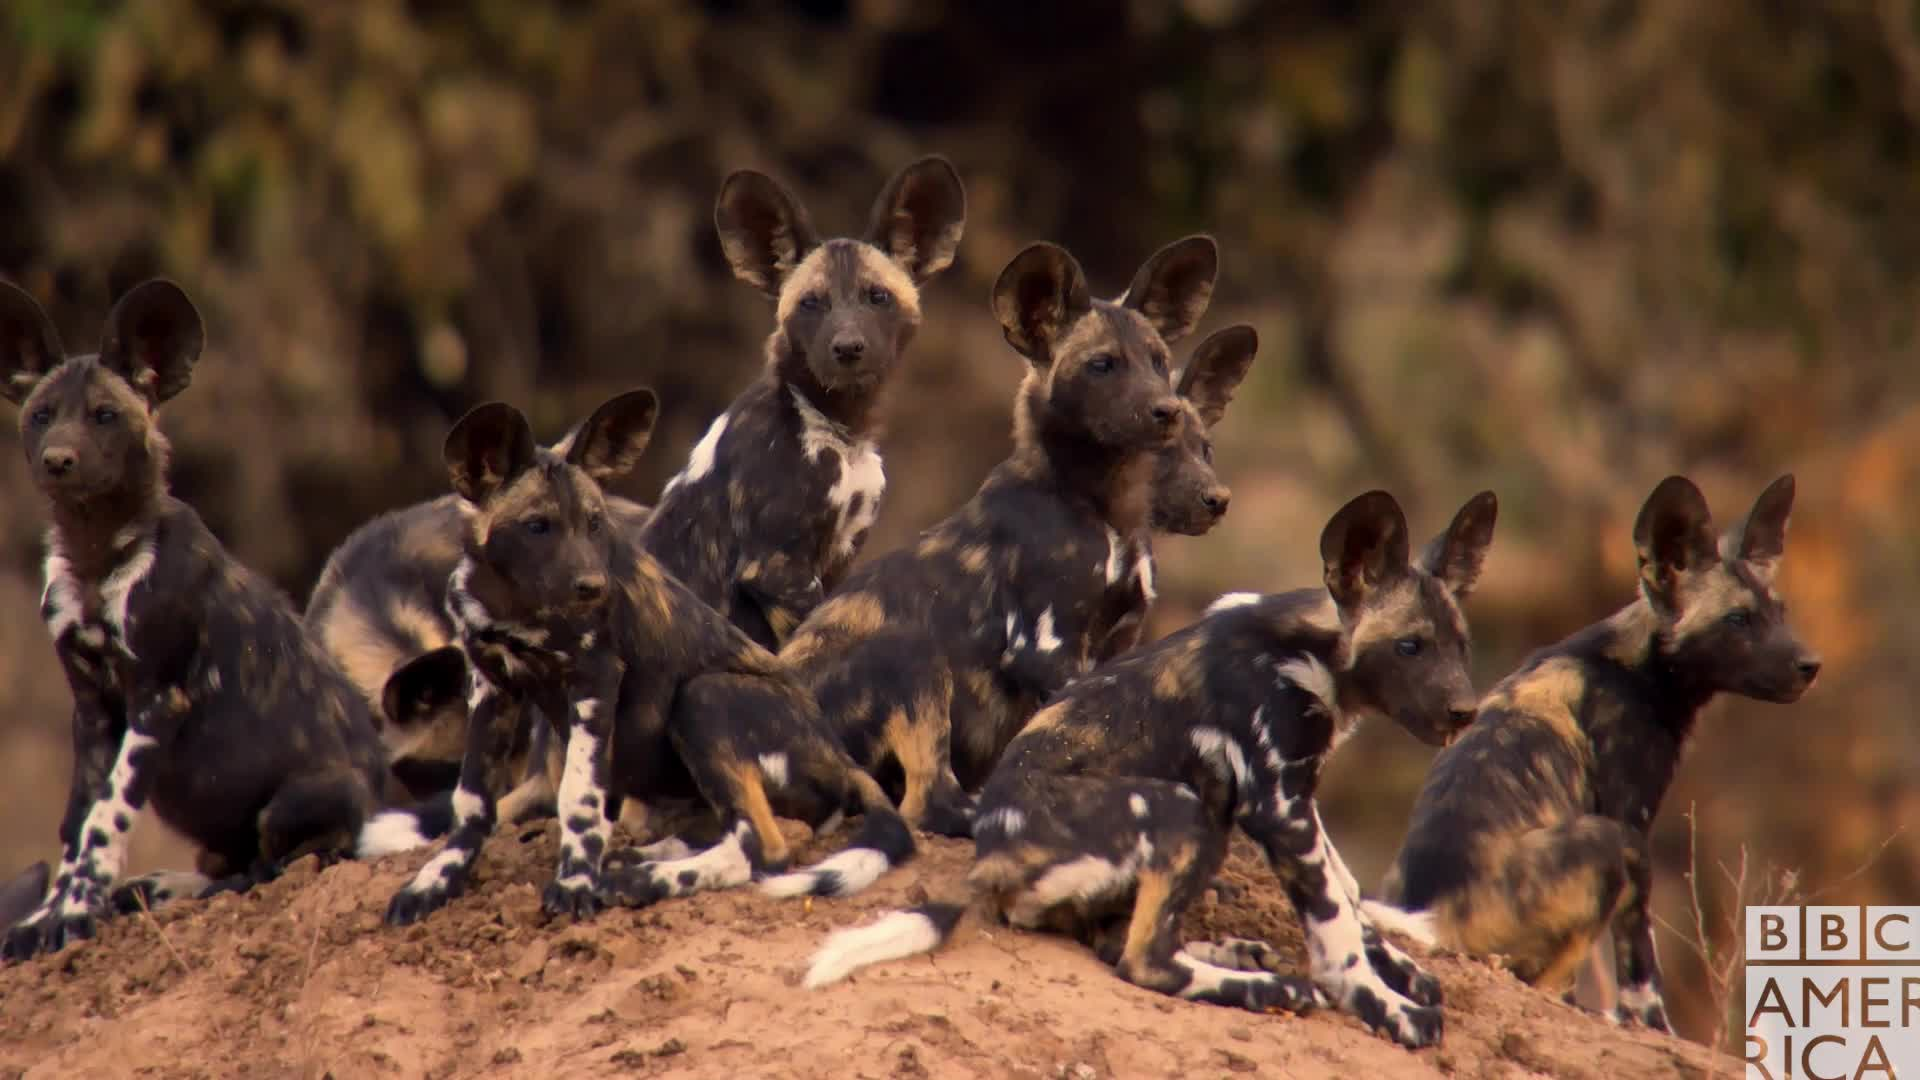 animal, animals, bbc america, bbc america dynasties, bbc america: dynasties, cute, dynasties, friends, painted wolf, painted wolves, sqaud, wolf, wolf pack, wolves, Dynasties Curious Wolf Puppies GIFs